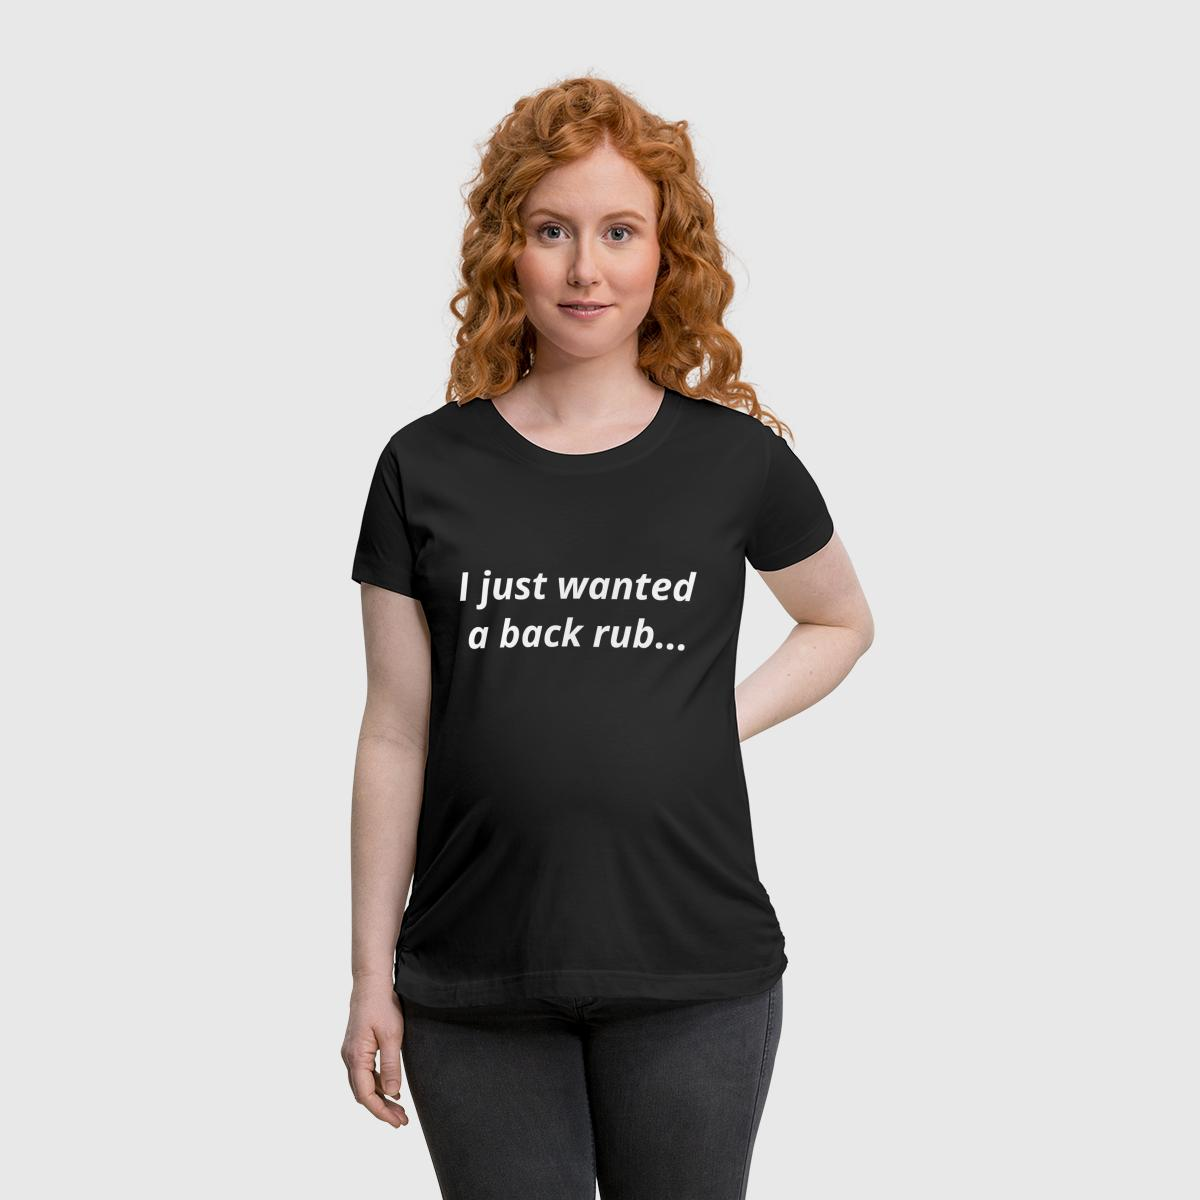 4d14bd4d0 Plus Size Maternity Shirts With Sayings - DREAMWORKS